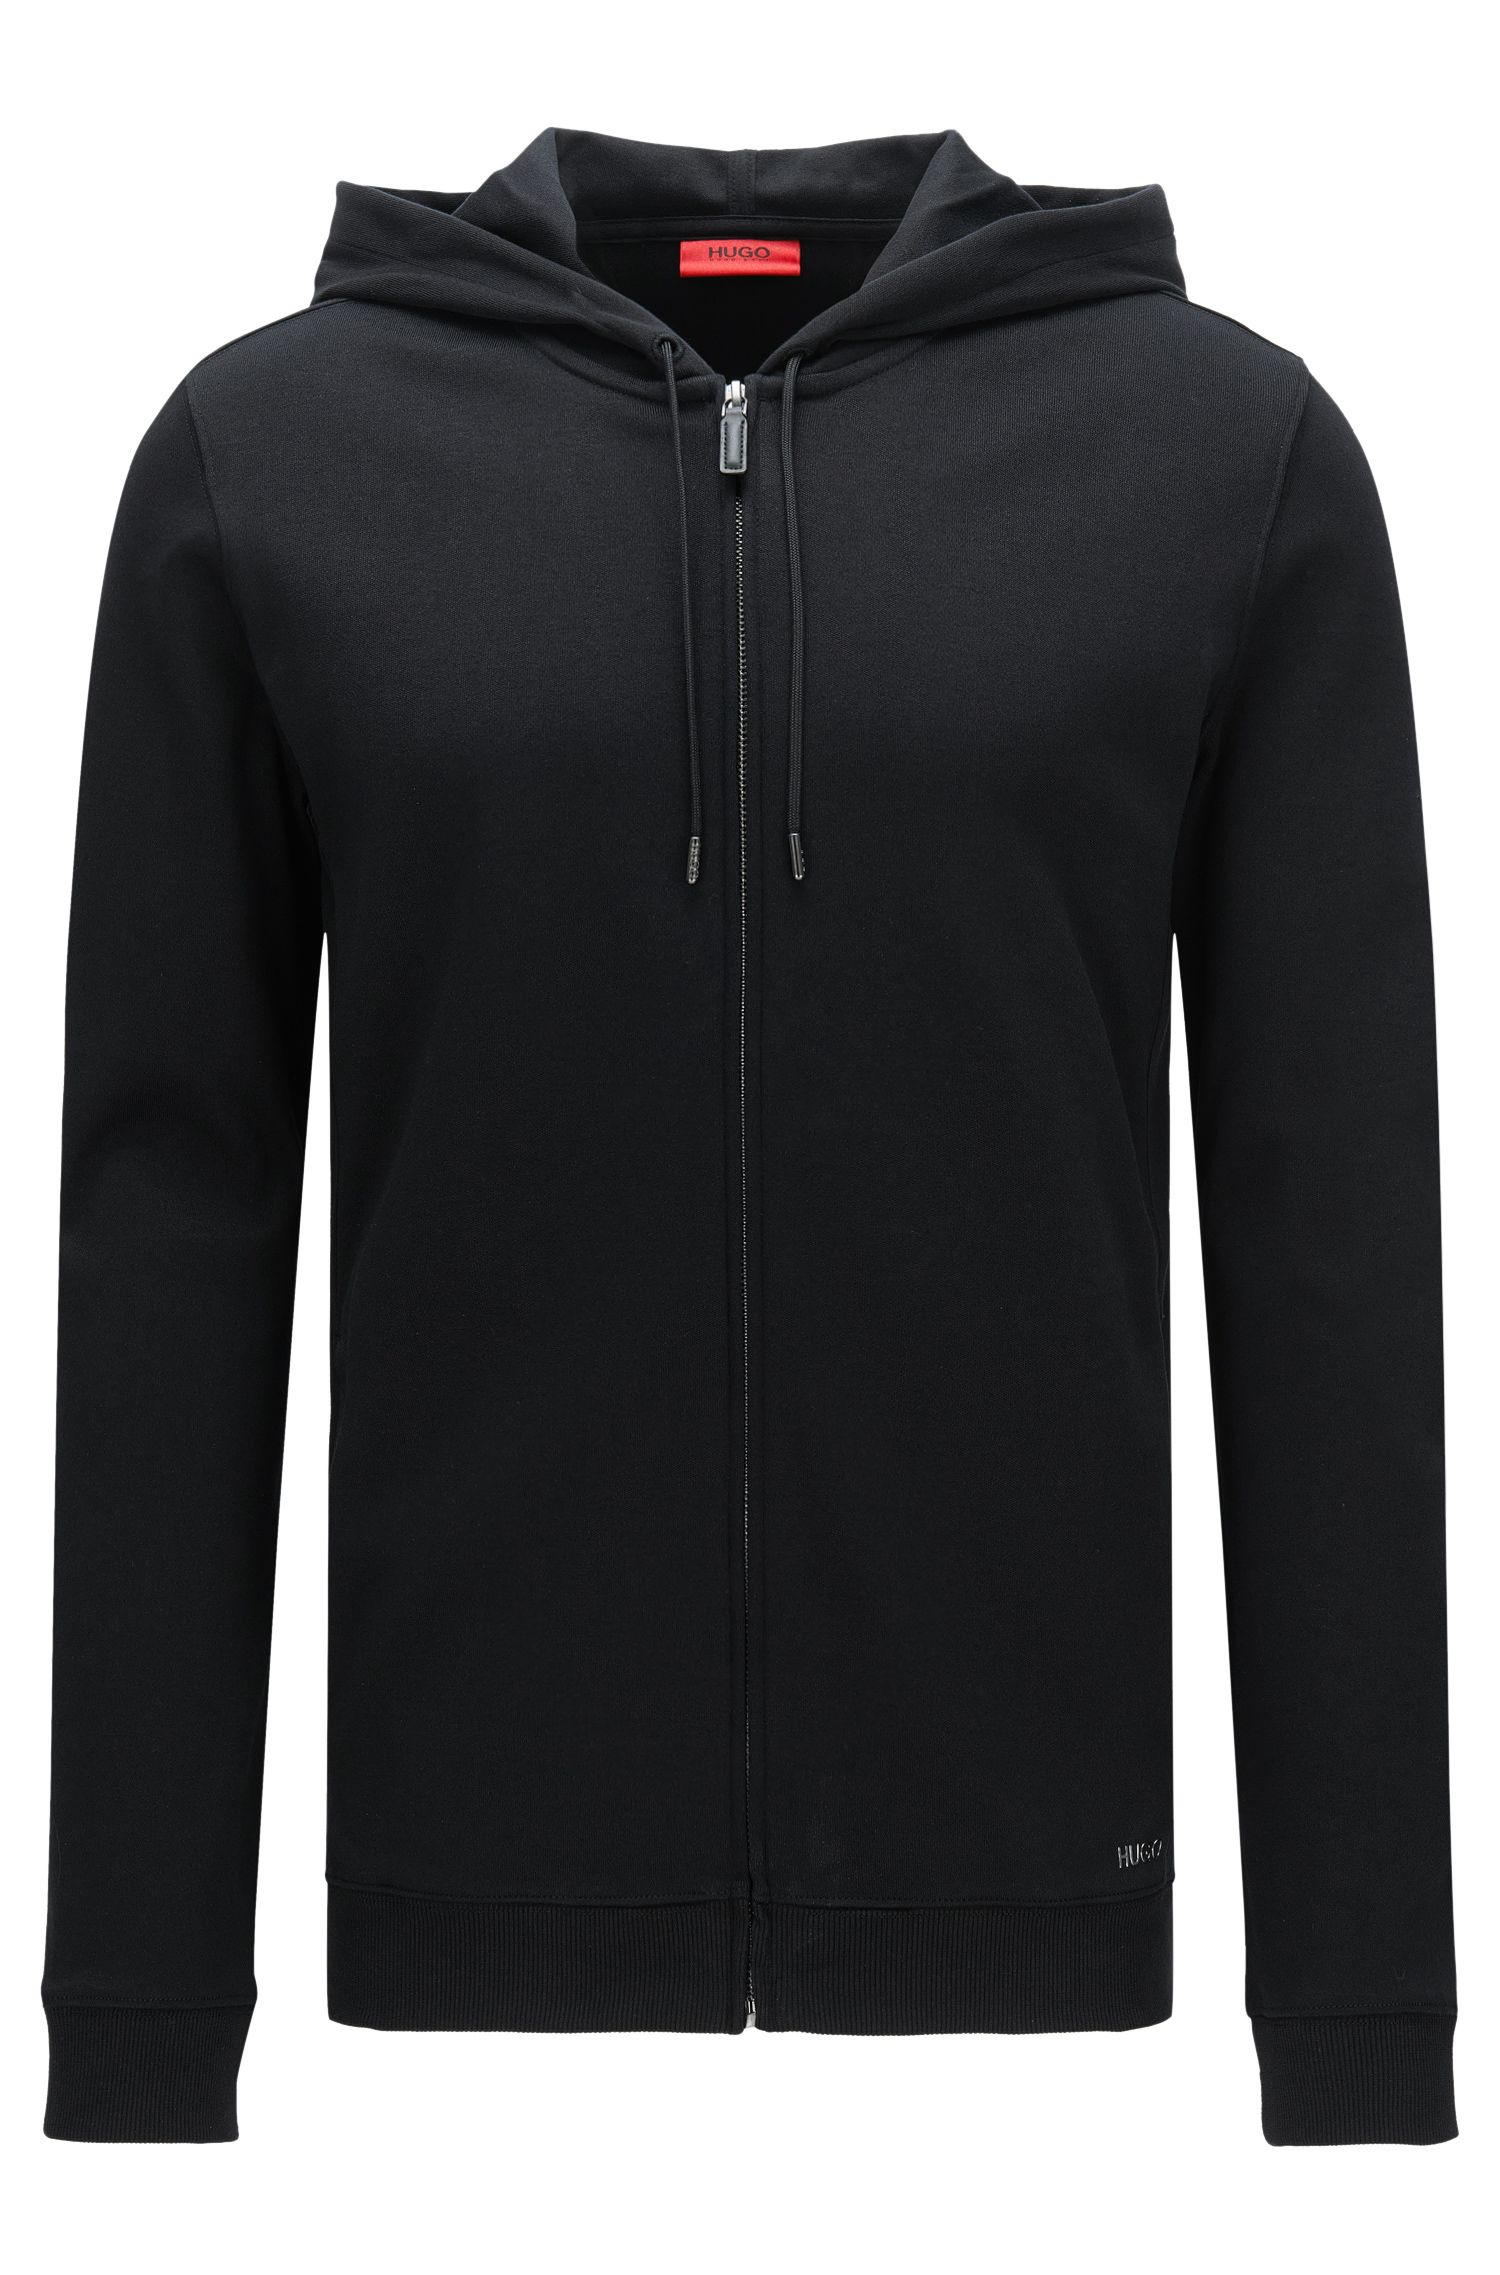 Relaxed-fit hooded sweatshirt jacket in cotton: 'Delinger'